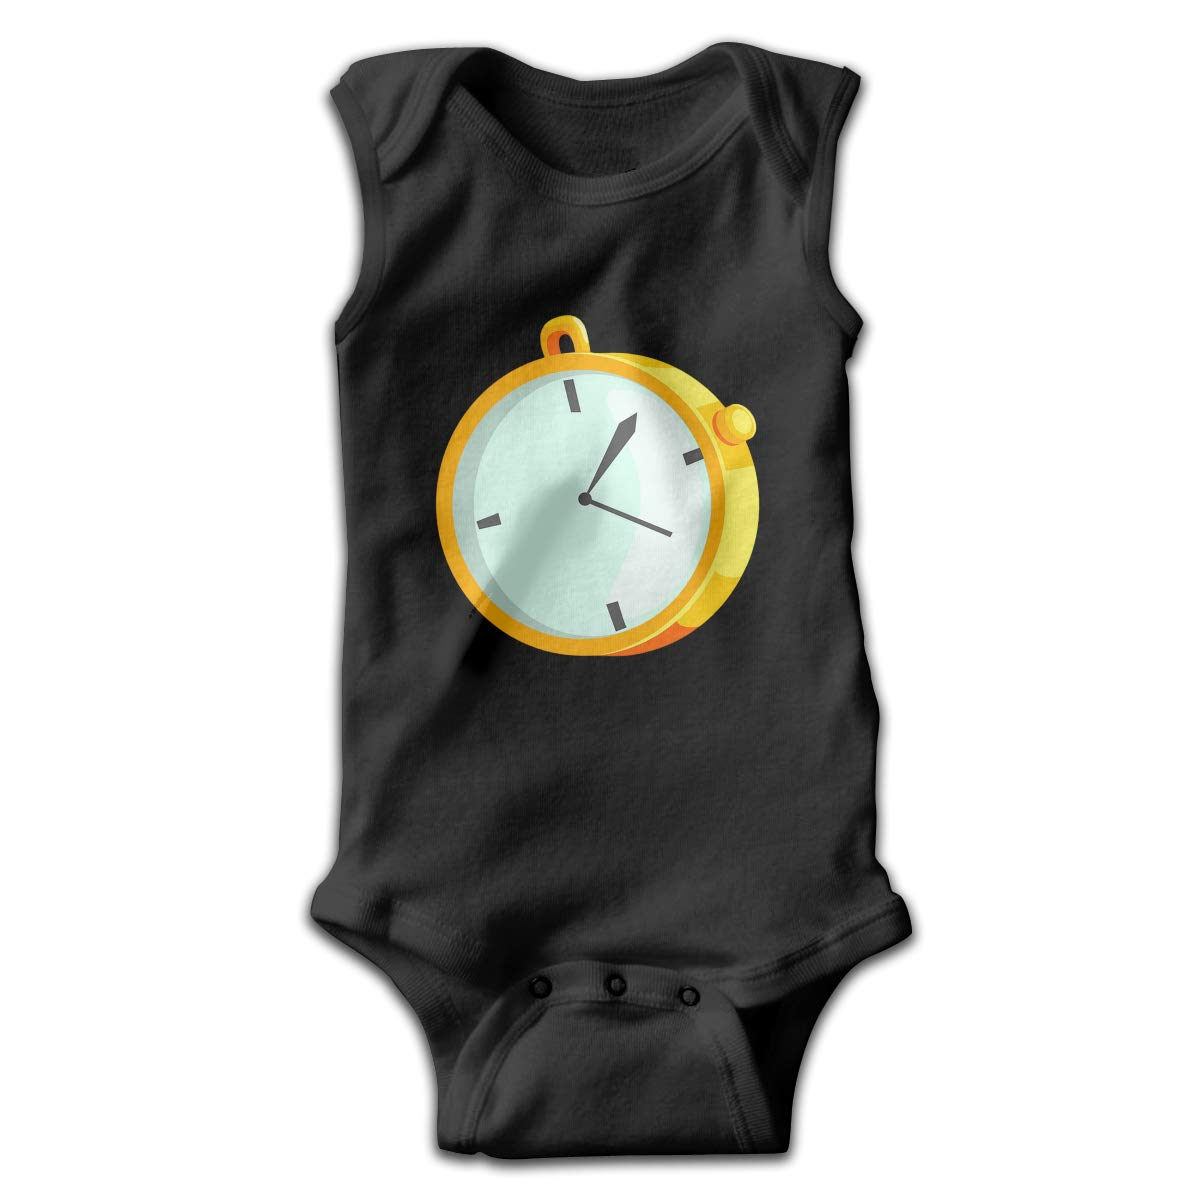 FAFU/&SKY Mechanical Stopwatch Drawing Toddler Baby Clothes Onesie Sleeveless Summer for Baby